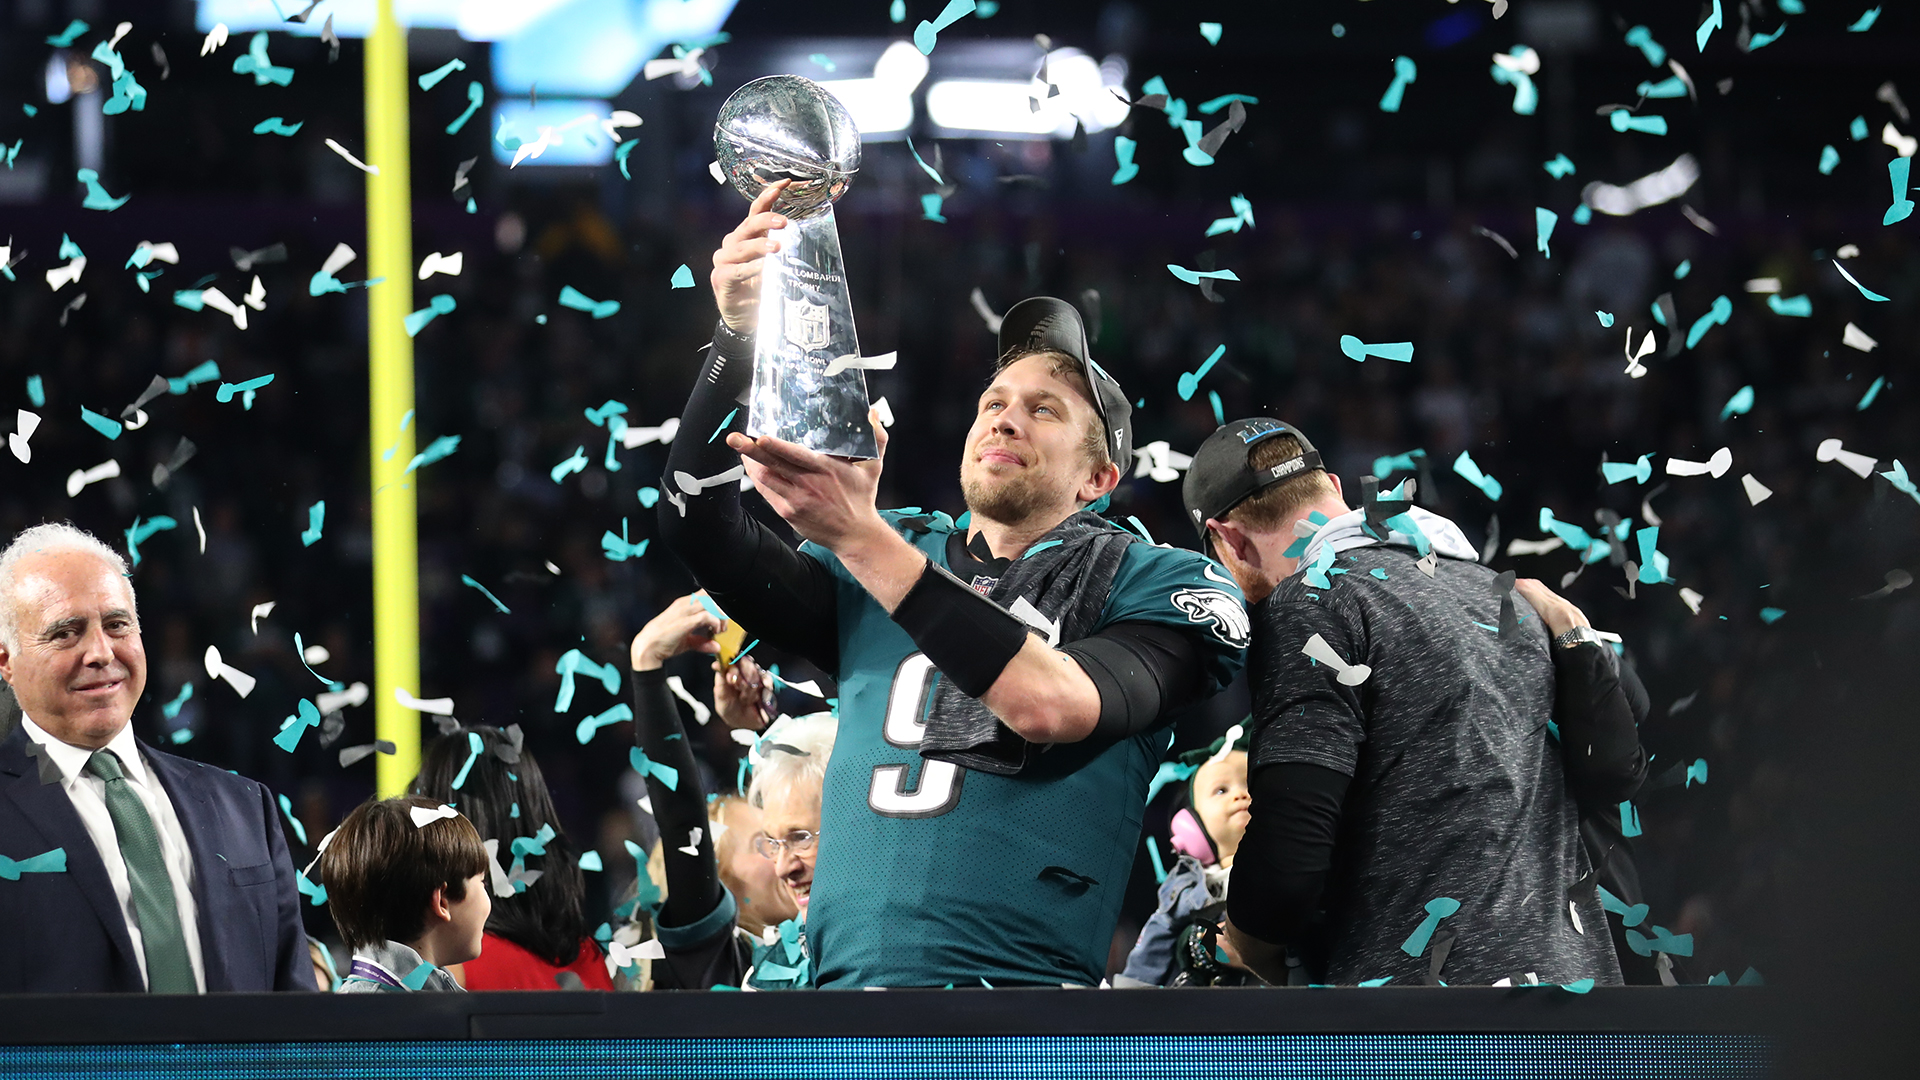 during the NFL Super Bowl LII football game against the Philadelphia Eagles on Sunday, Feb. 4, 2018 in Minneapolis, Minn.